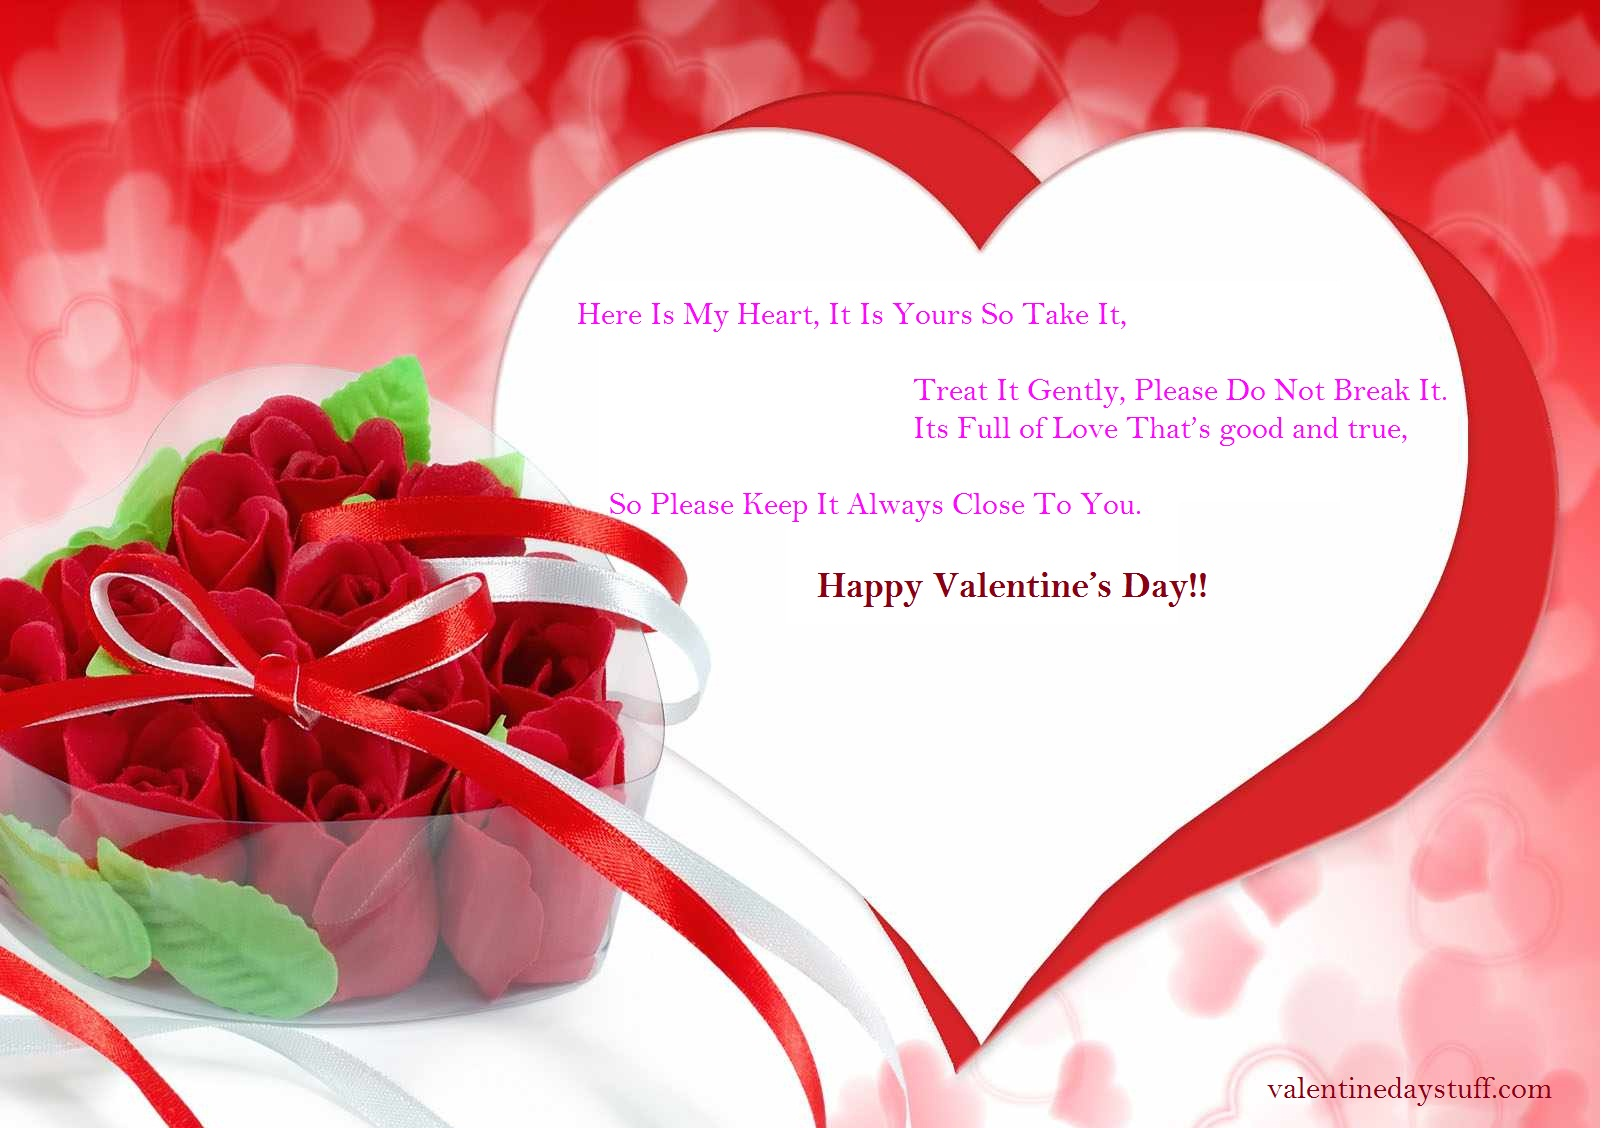 Happy valentines day greeting cards 2018 free download techicy download valentine day greeting card m4hsunfo